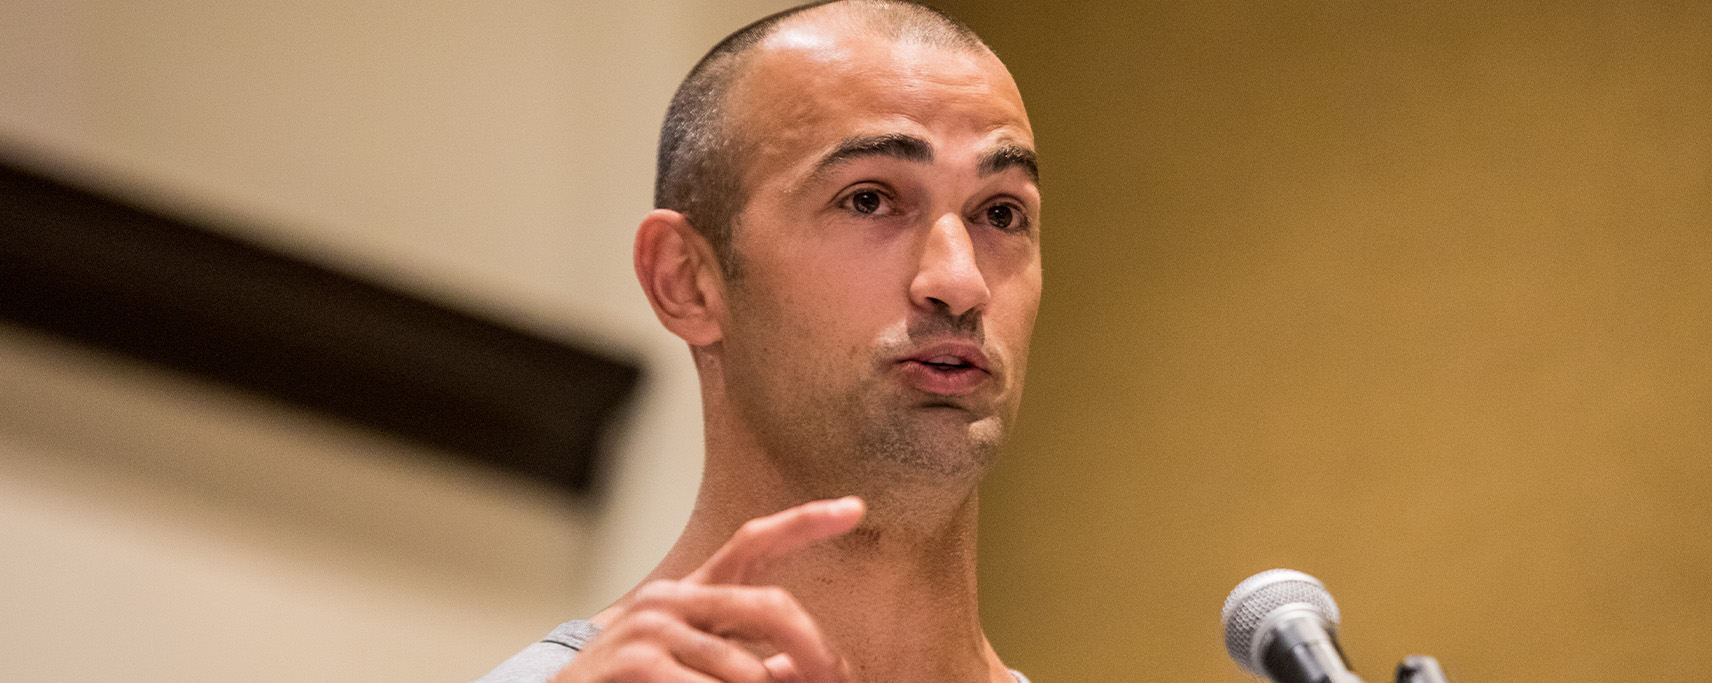 IANNI TRAINING'S READY TO CHANGE CULTURE AROUND YOUTH PLAYER DEVELOPMENT